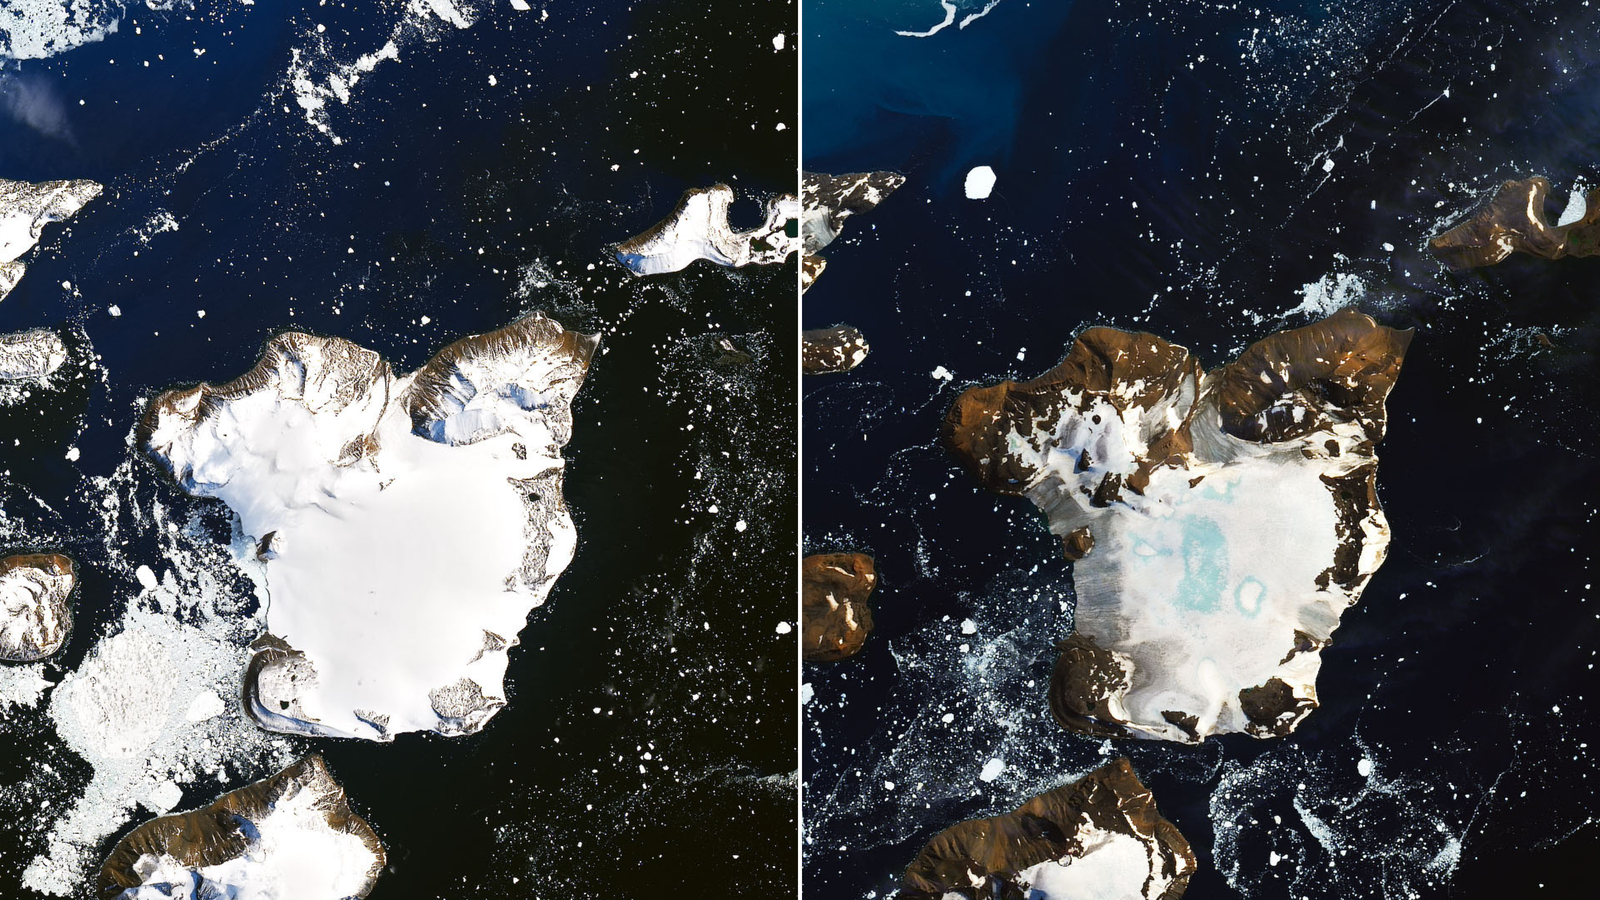 A heat wave in Antarctica melted 20% of an island's snow in 9 days